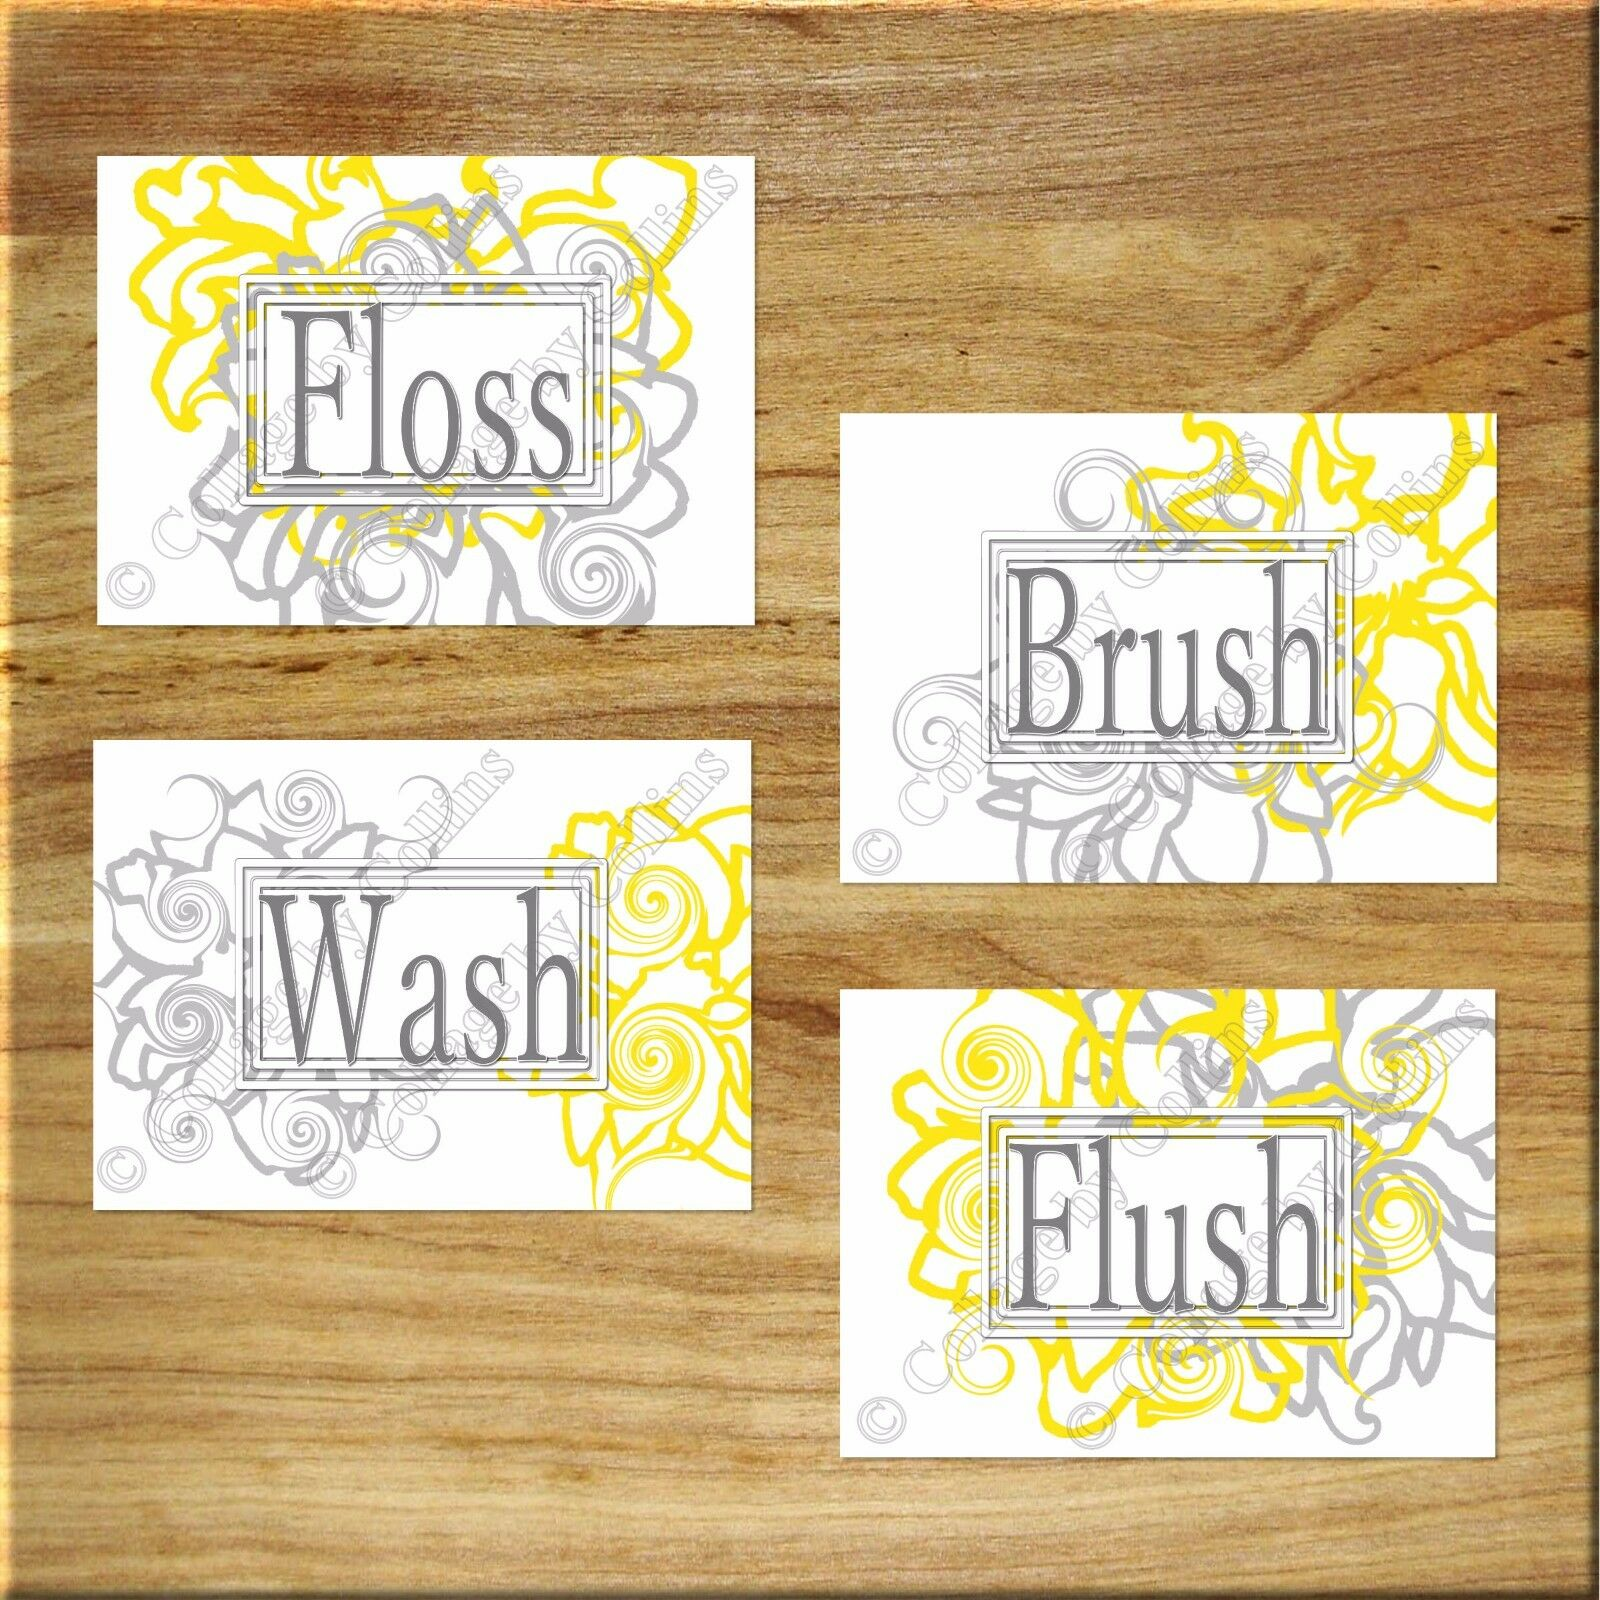 Colorful Wall Art For A Bathroom Sketch - The Wall Art Decorations ...